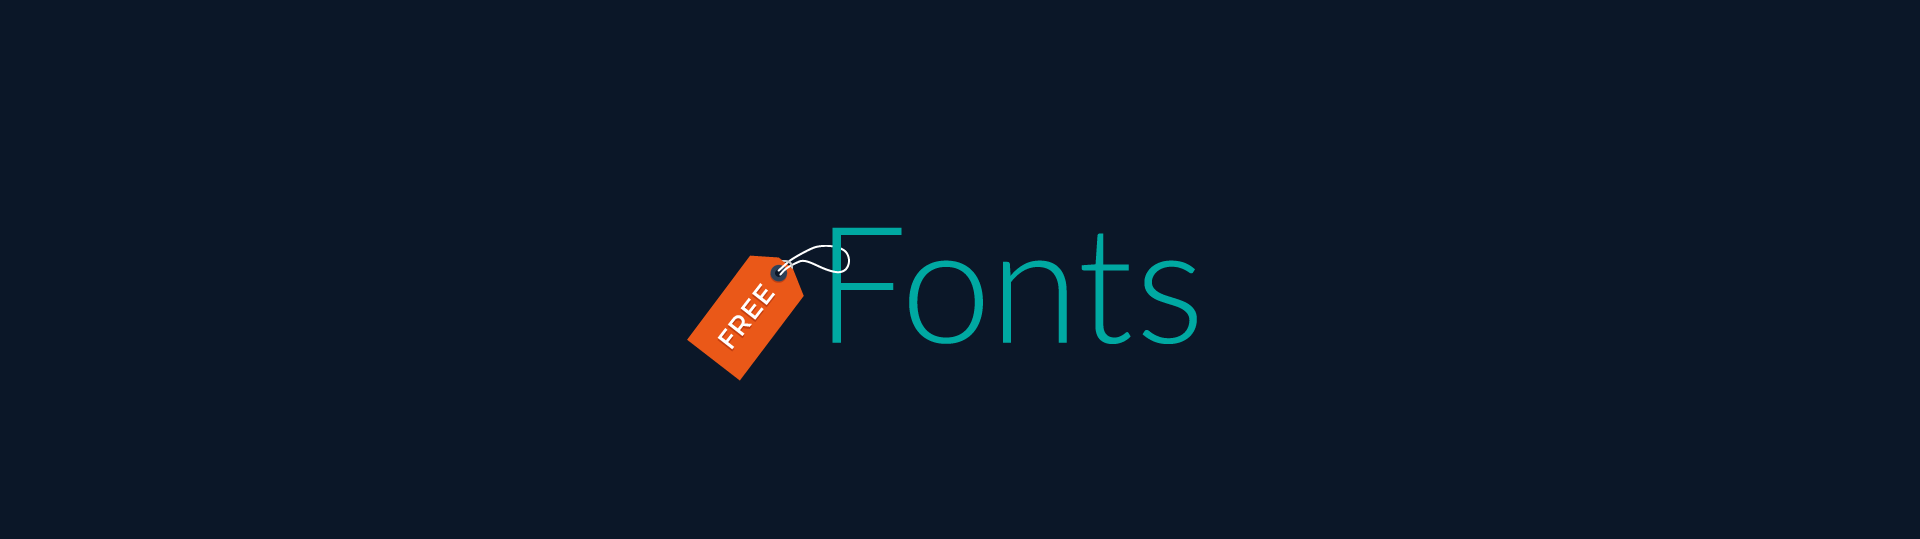 60-Free-Fonts-for-Minimalist-Designs_01